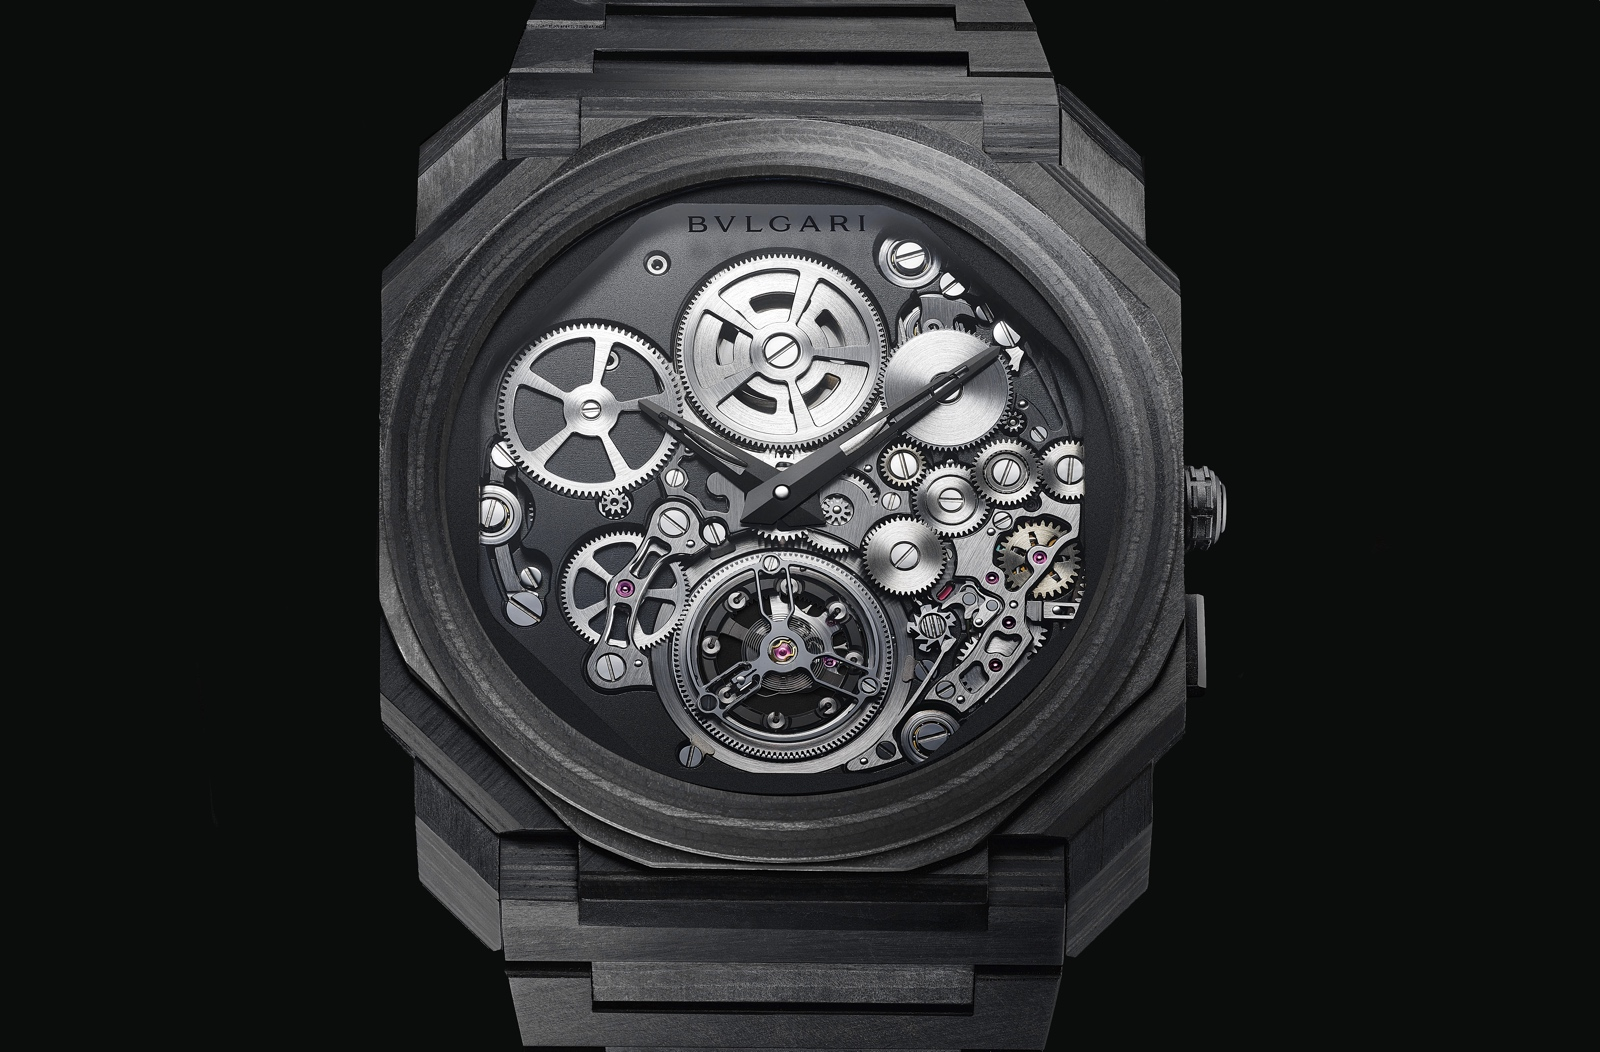 Pre-Baselworld 2019 de Bulgari - Octo FInissimo Tourbillon Carbon